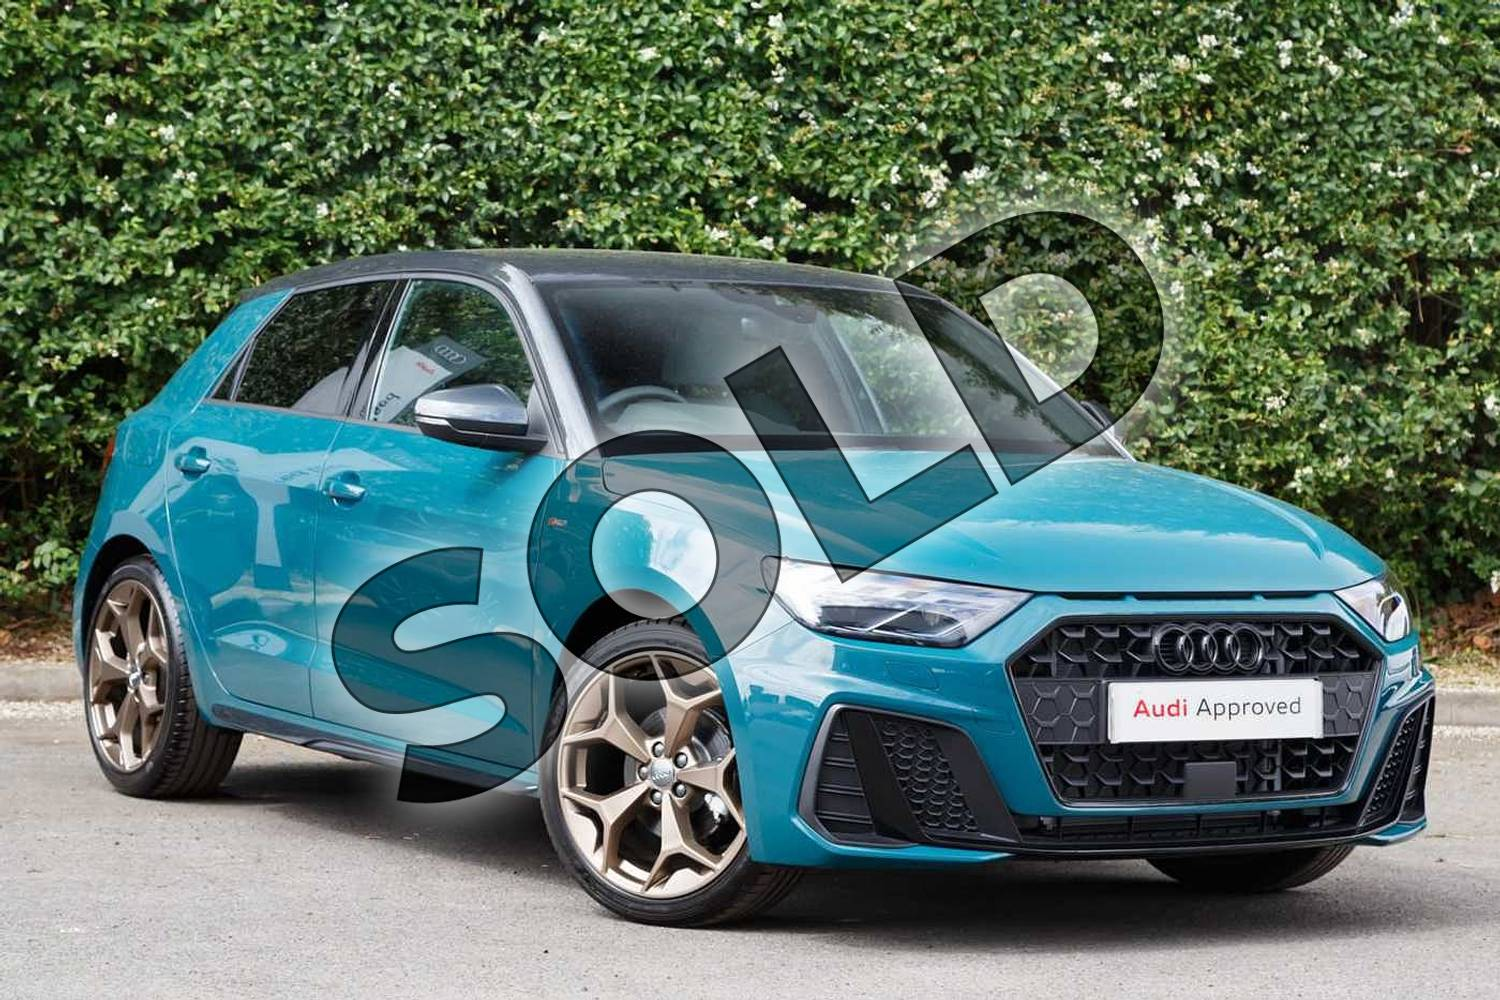 2019 Audi A1 Sportback Special Editions Special Editions 35 TFSI S Line Style Edition 5dr in Tioman Green at Worcester Audi